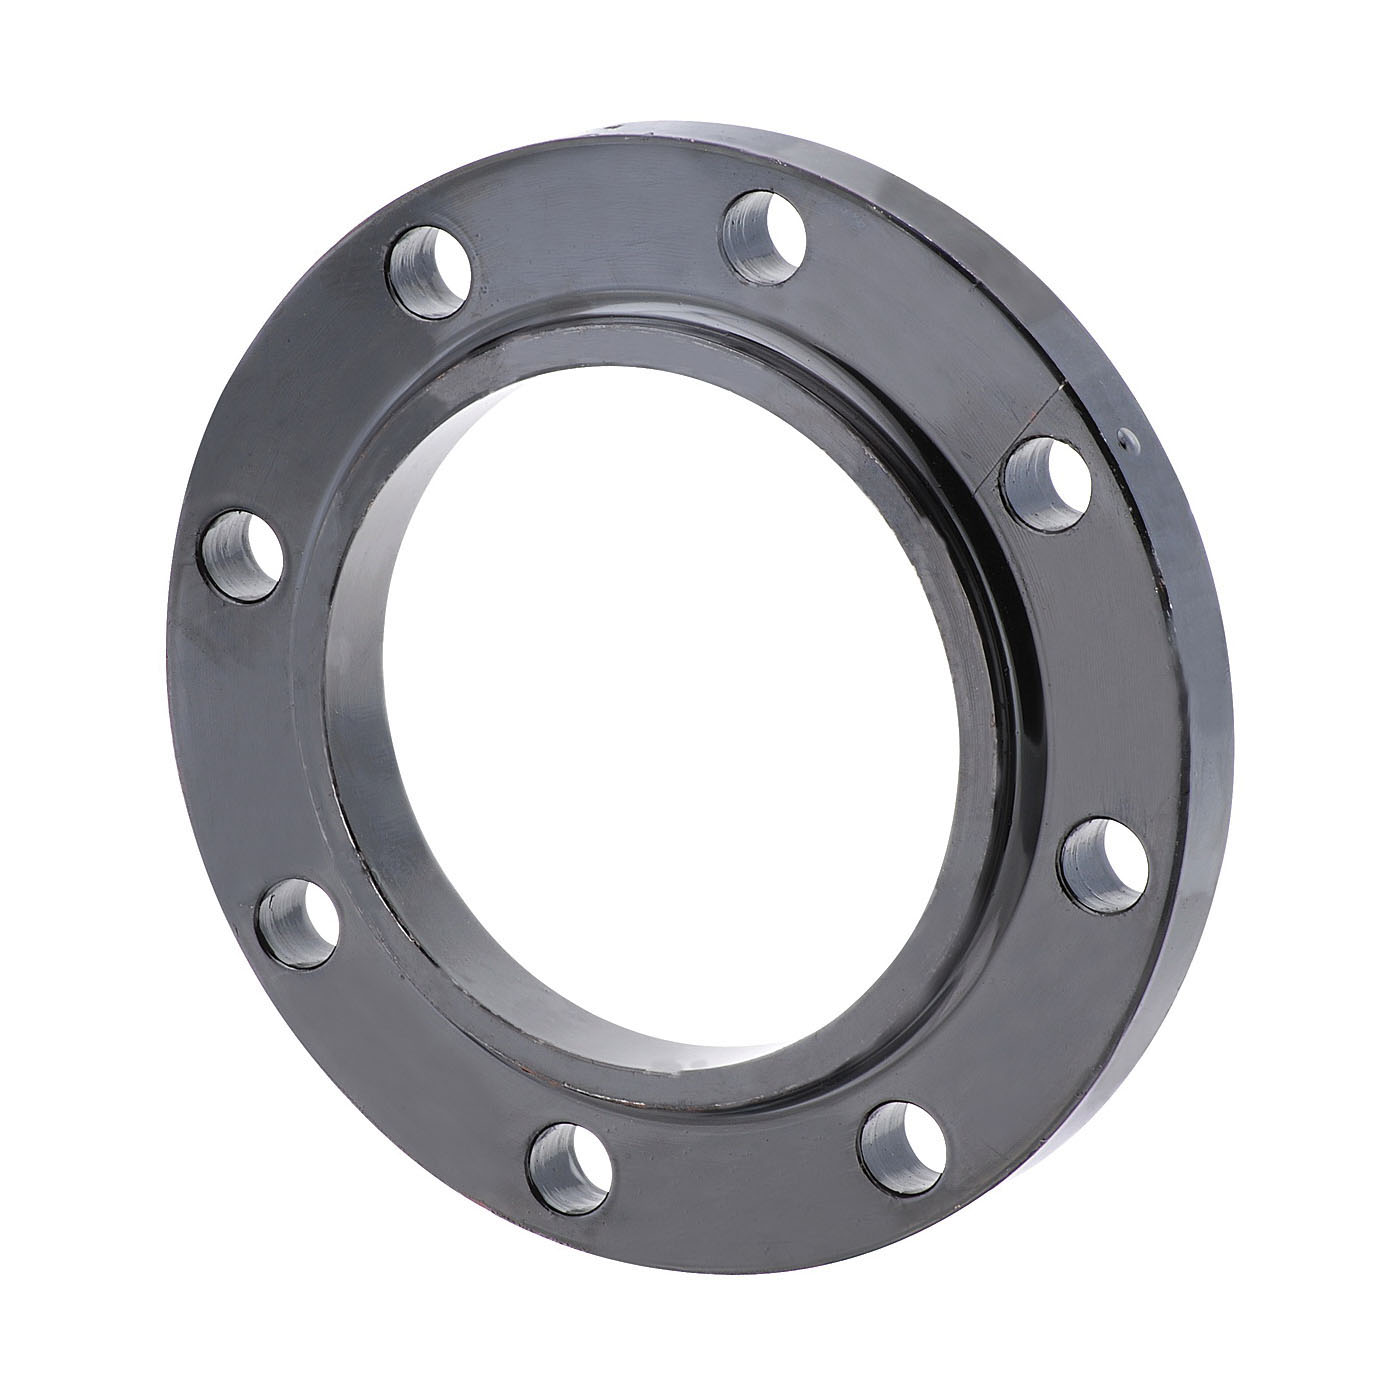 Matco-Norca™ MN150LF08 Flat Face Lap Joint Flange, 2 in Nominal, Carbon Steel, 150 lb, Domestic